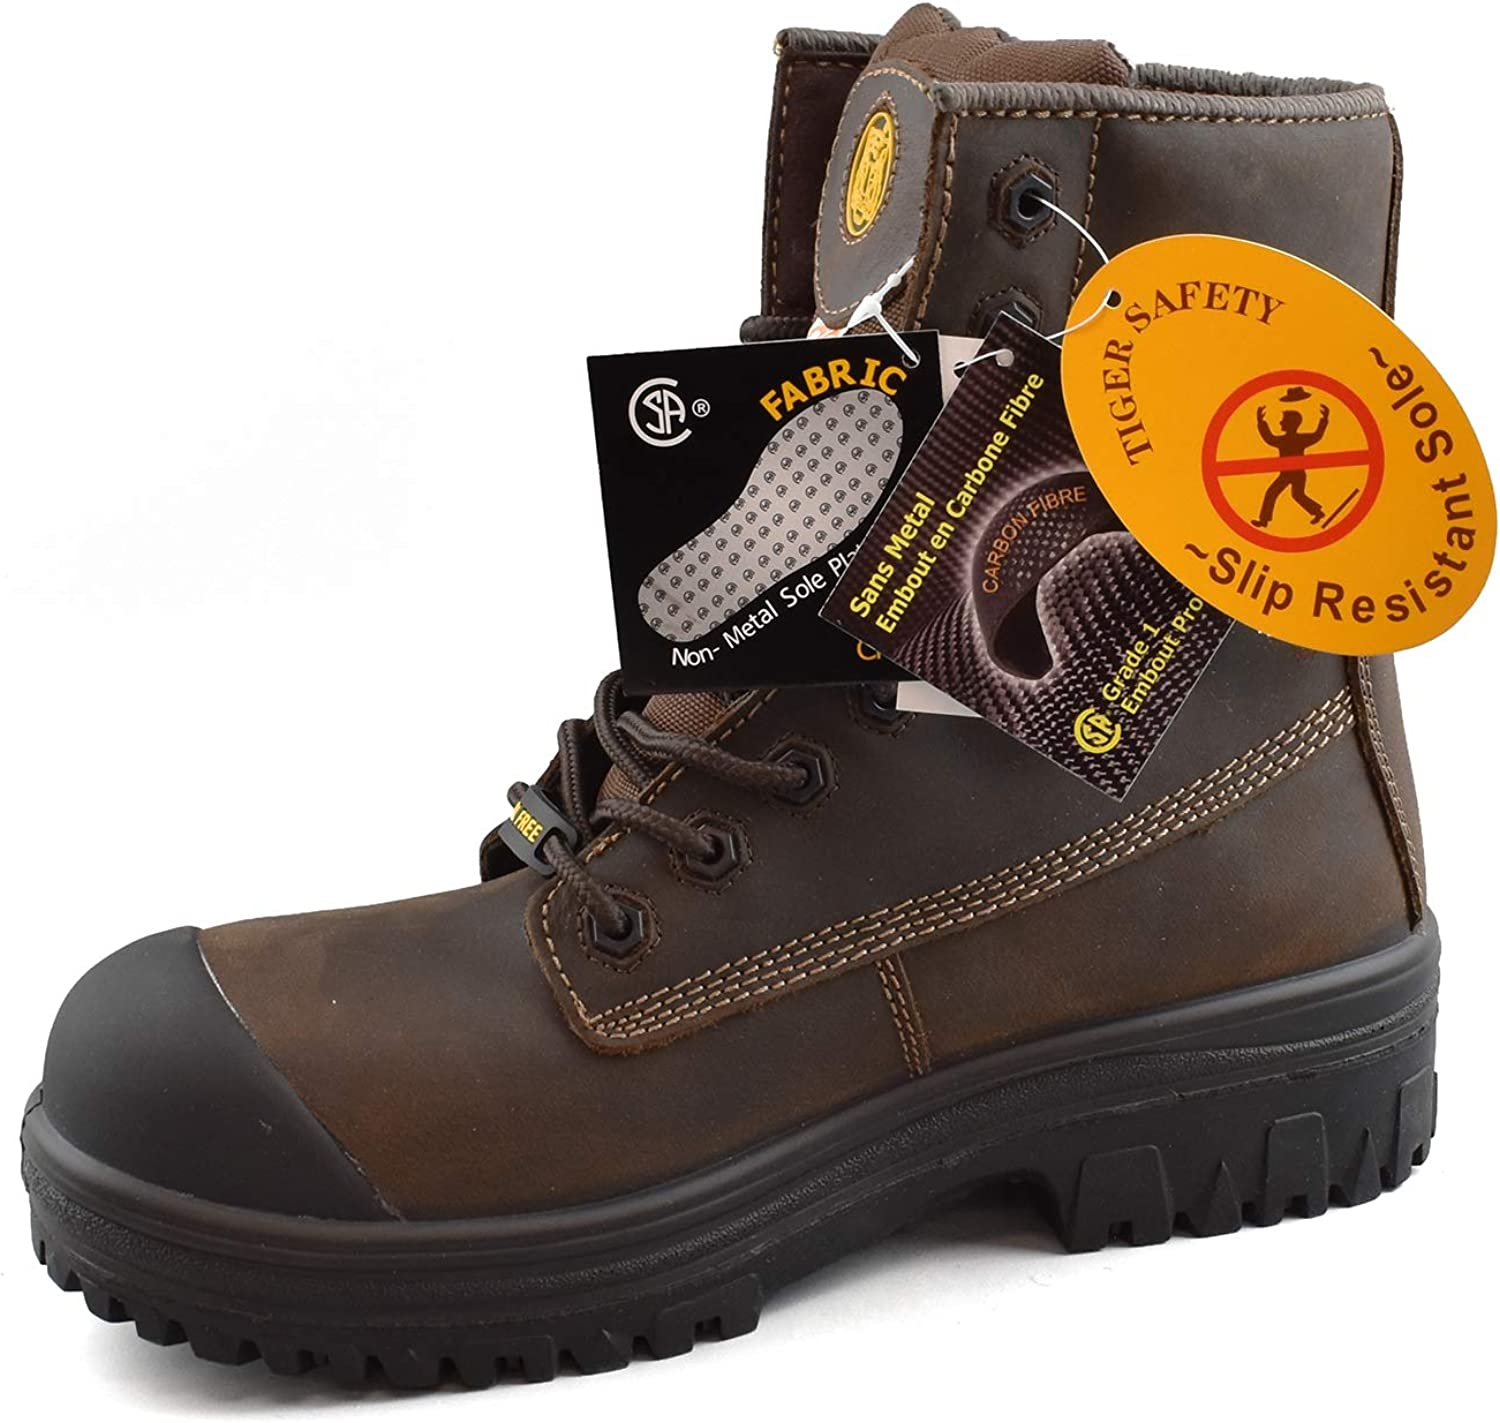 Tiger Mens Safety Boots CSA Approved